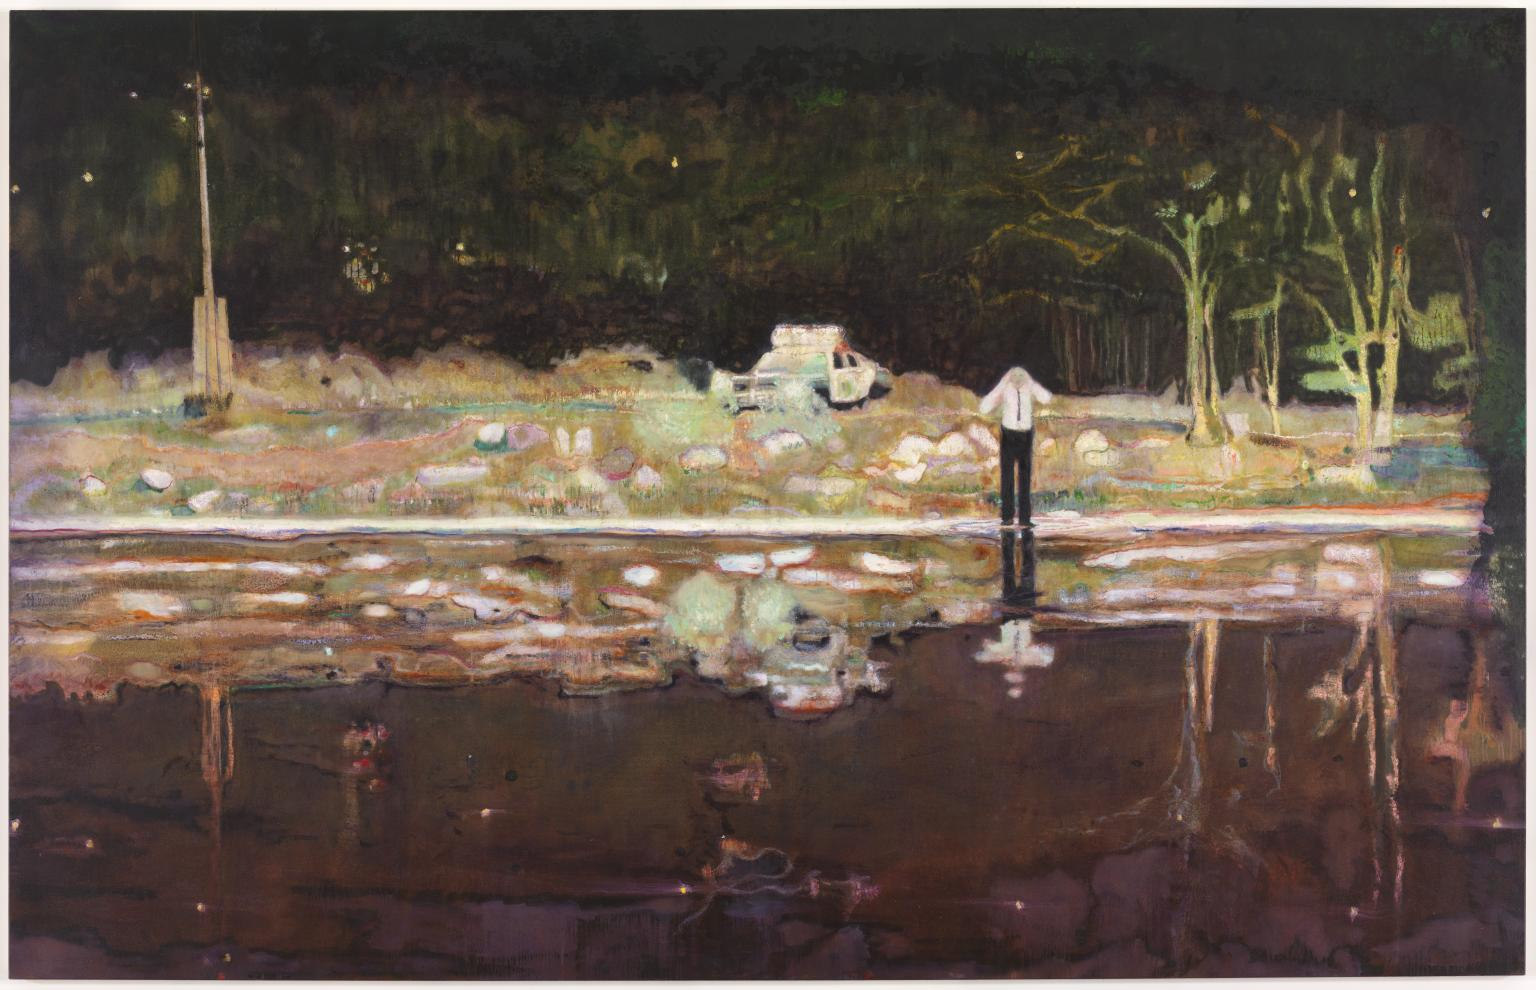 Echo Lake 1998 Peter Doig born 1959 Presented by the Trustees in honour of Sir Dennis and Lady Stevenson (later Lord and Lady Stevenson of Coddenham), to mark his period as Chairman 1989-98, 1998 http://www.tate.org.uk/art/work/T07467